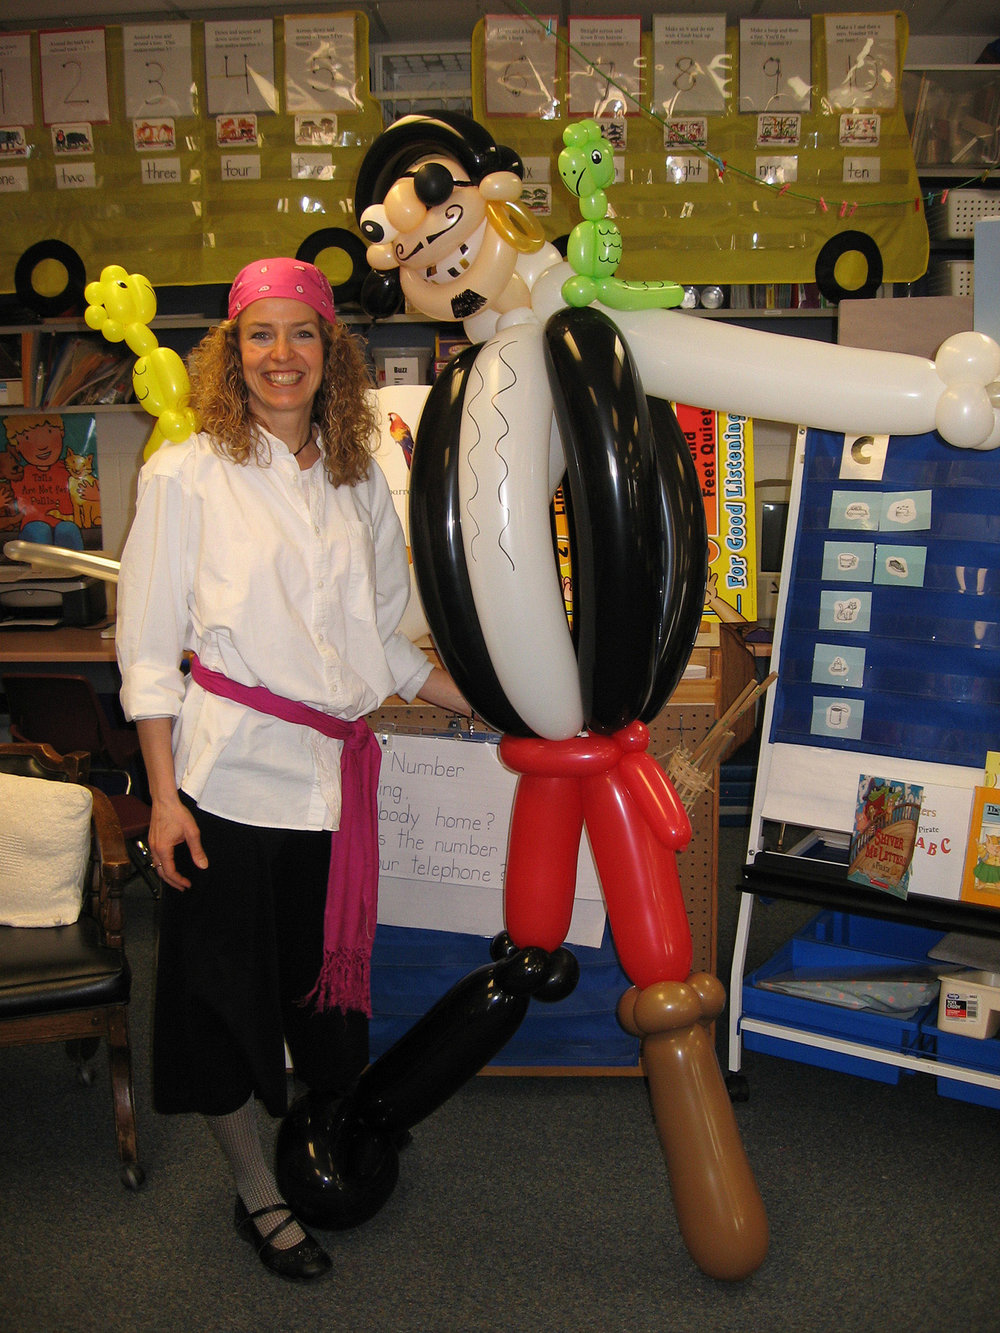 Balloon Pirate